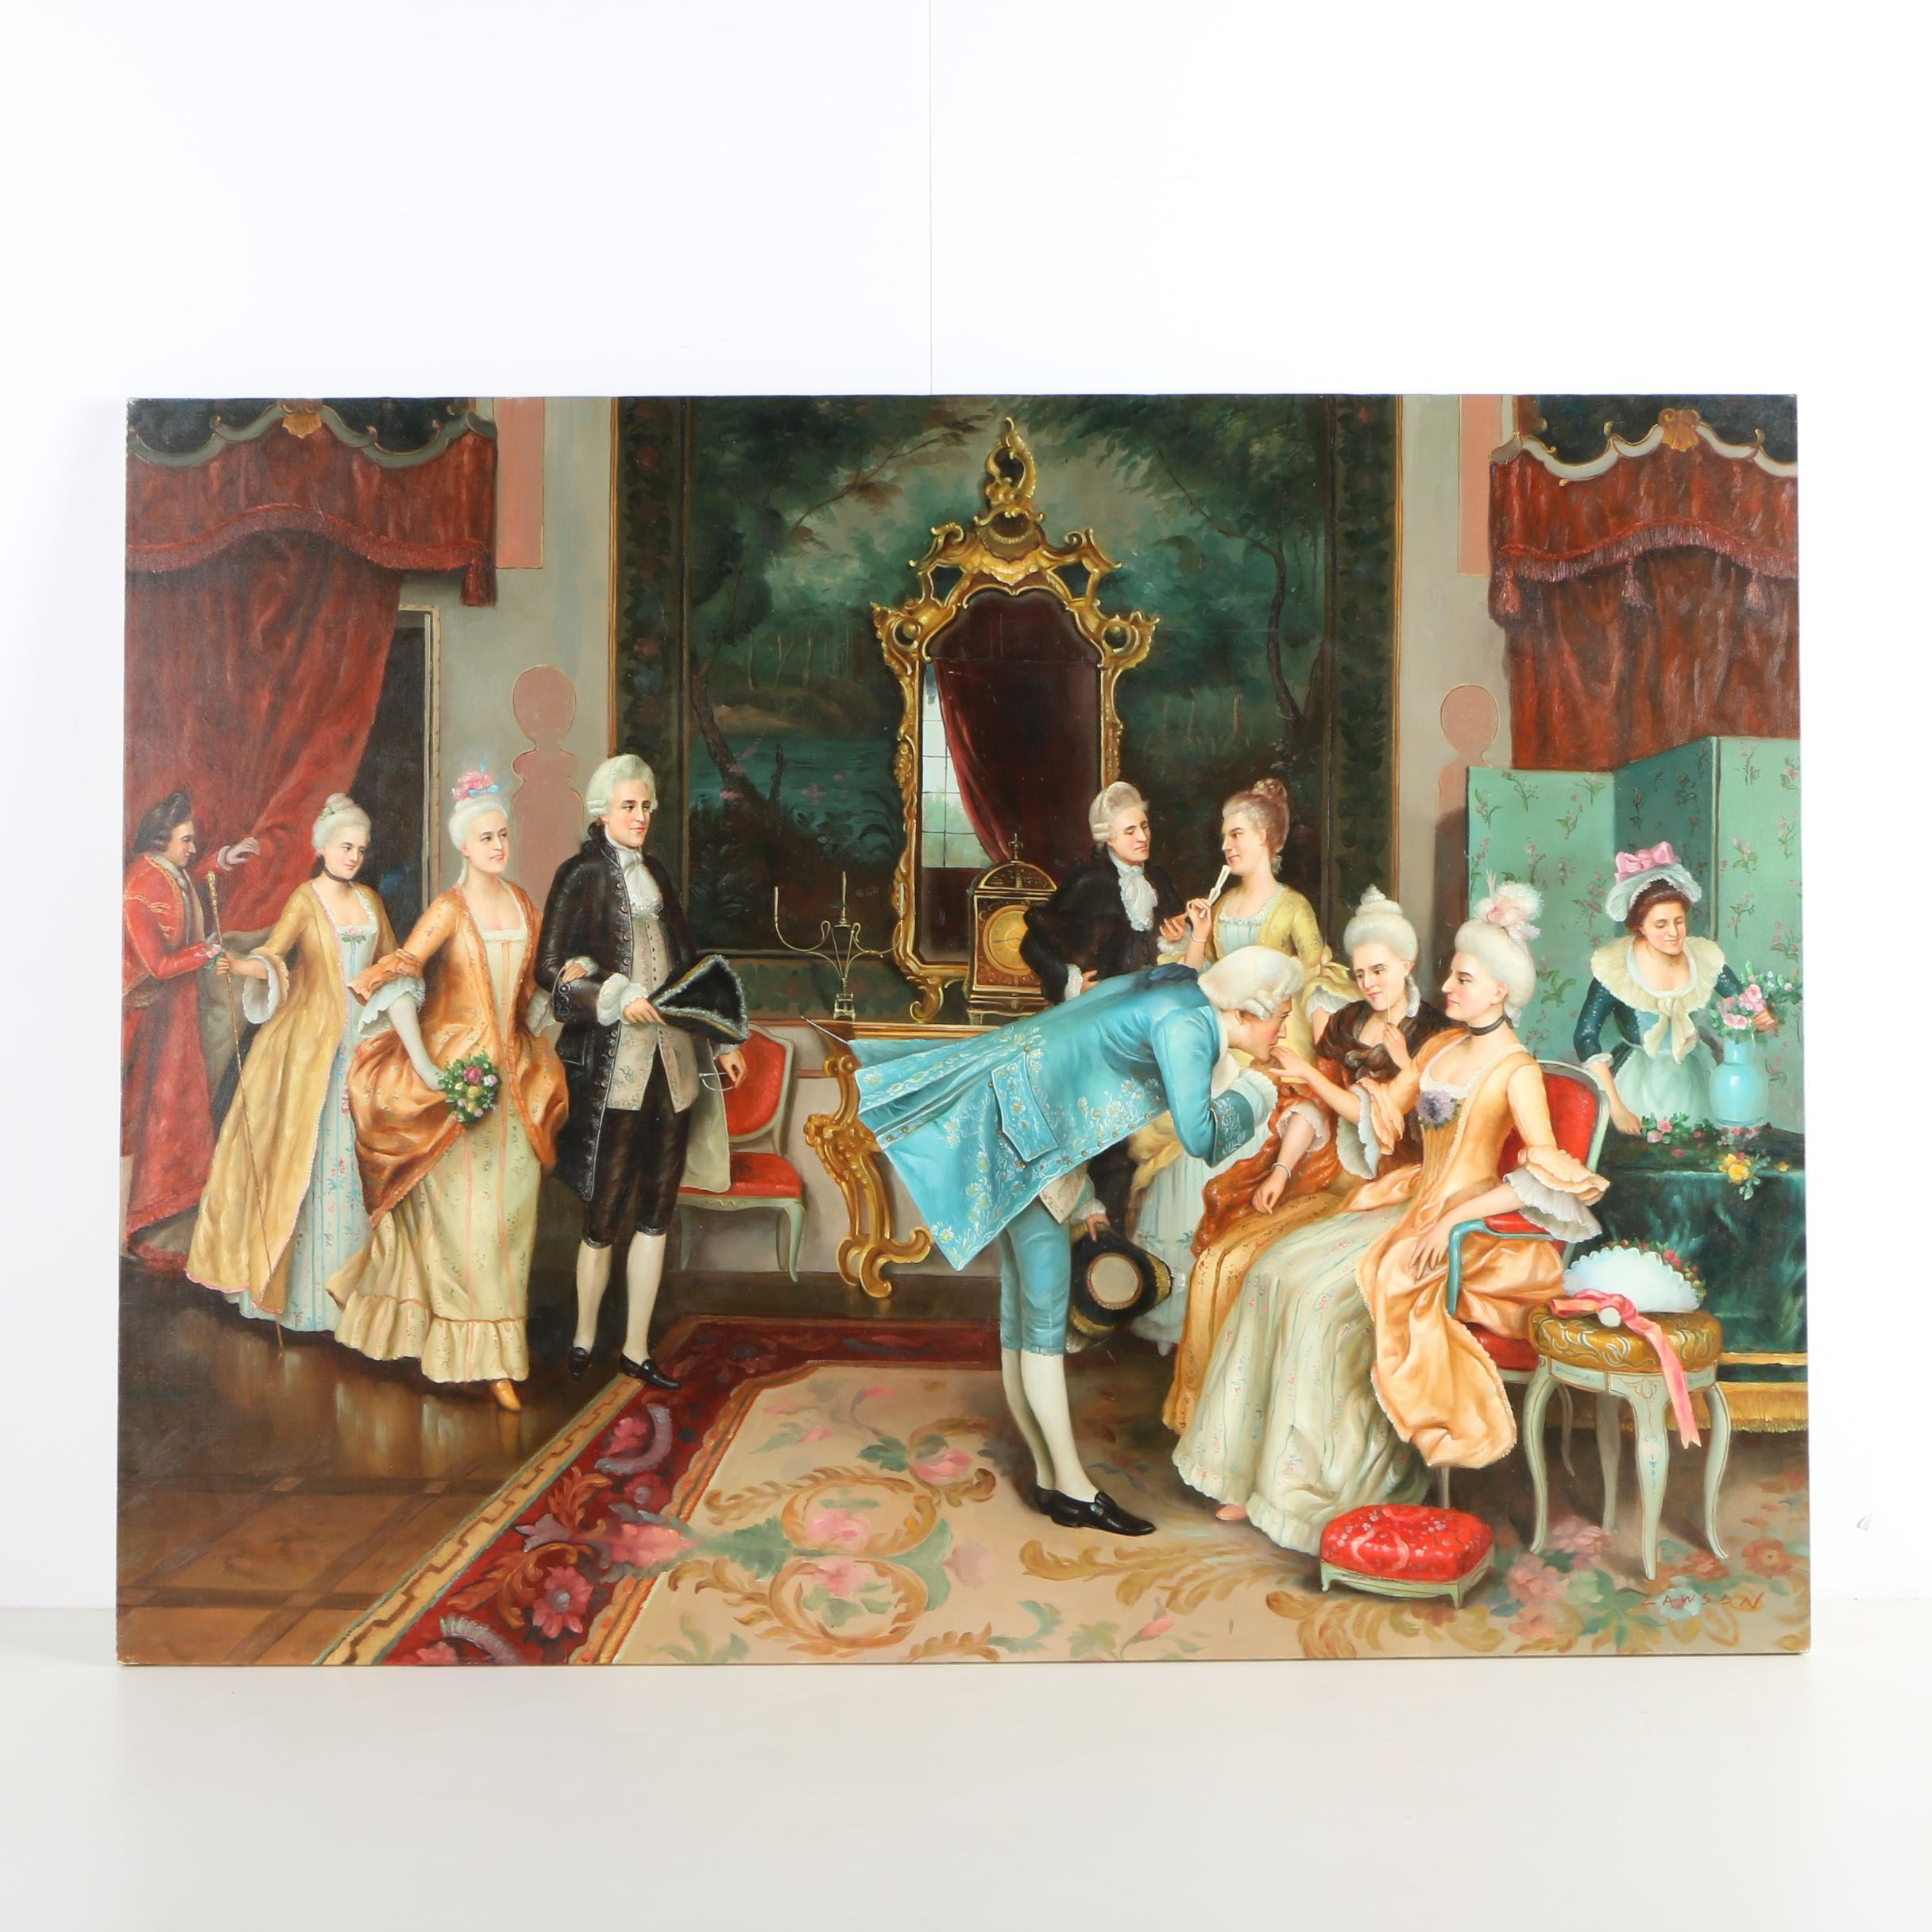 """Oil Painting in the Manner of Arturo Ricci's """"The Reception"""""""